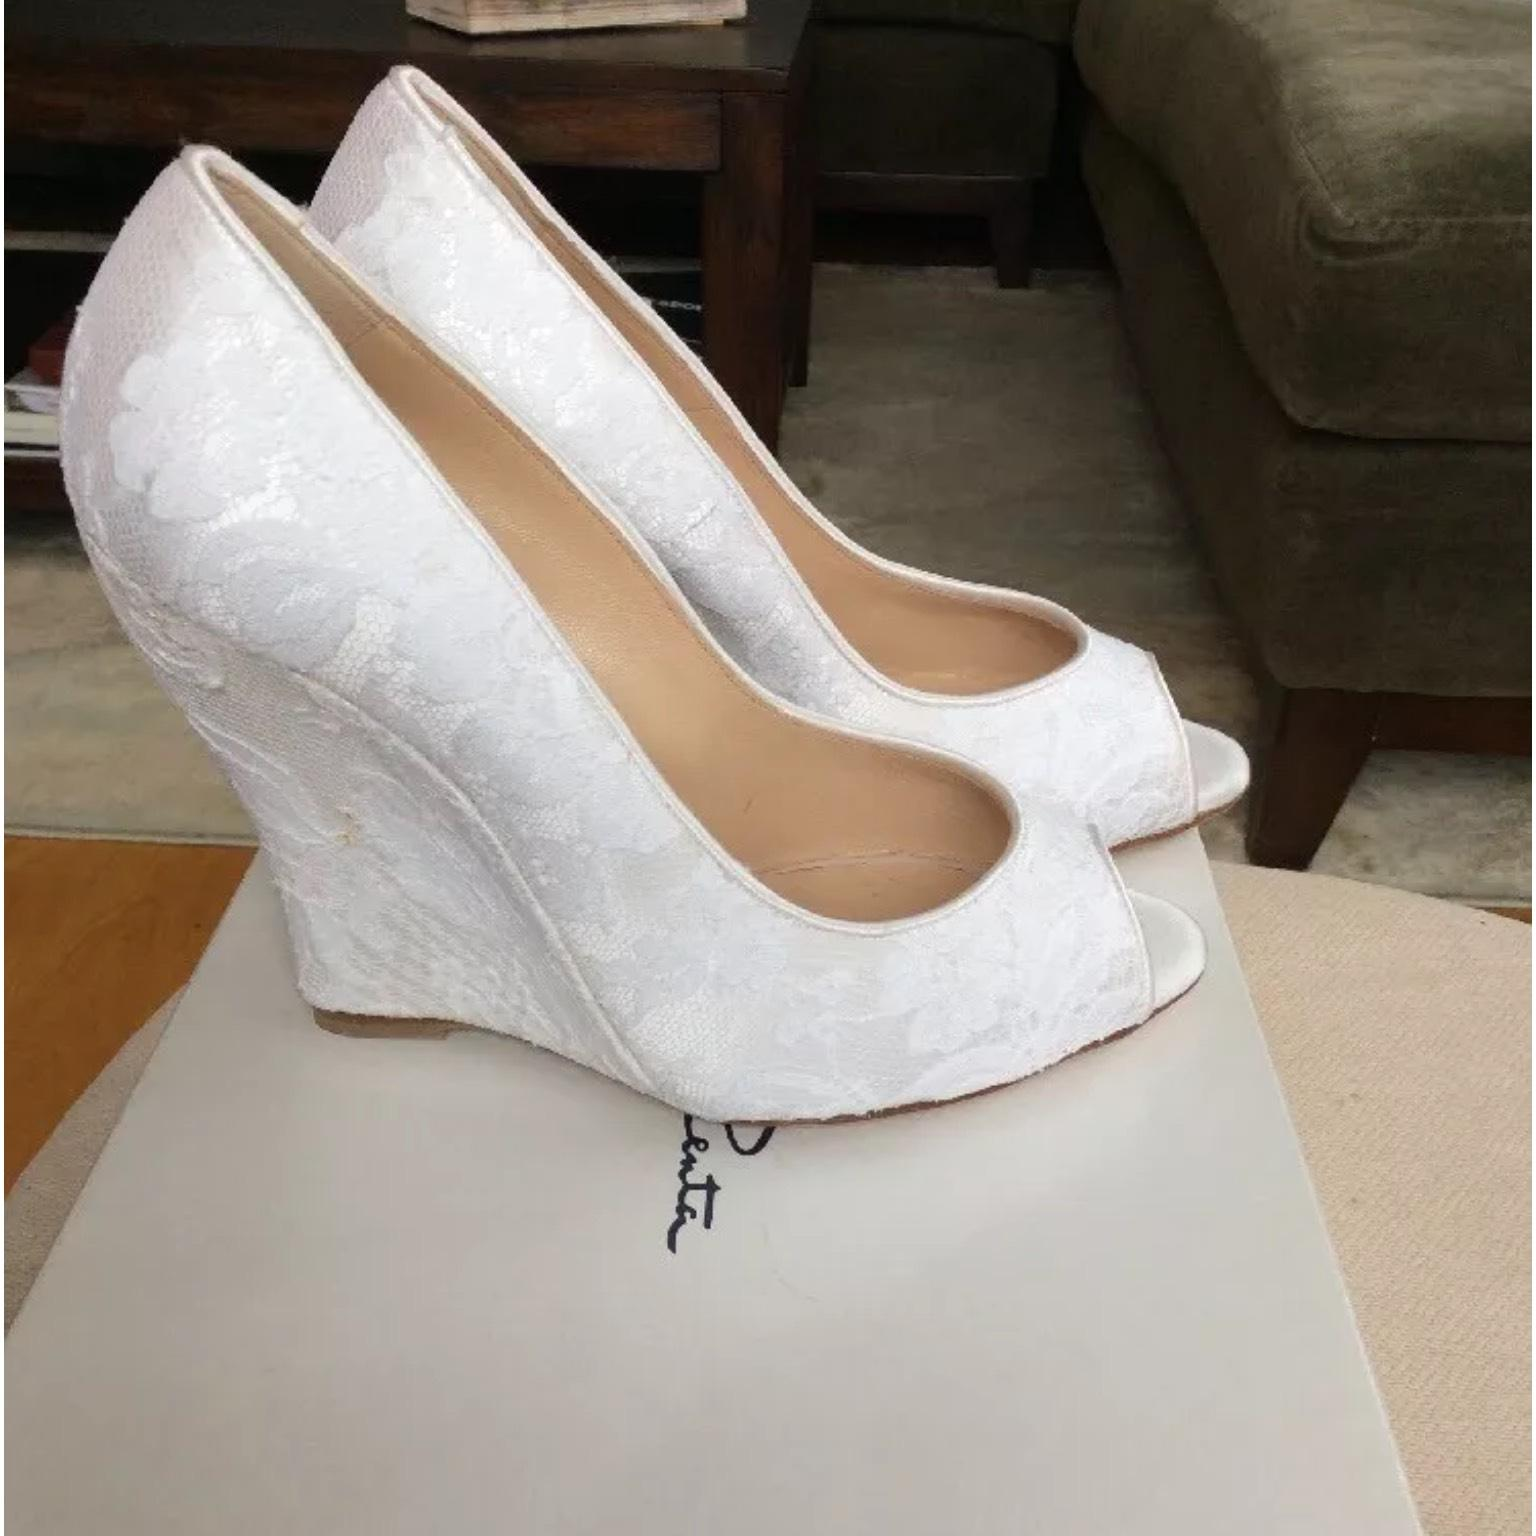 oscar de la renta wedding shoes oscar de la renta white odlr bridal wedges size us 6 5 6314